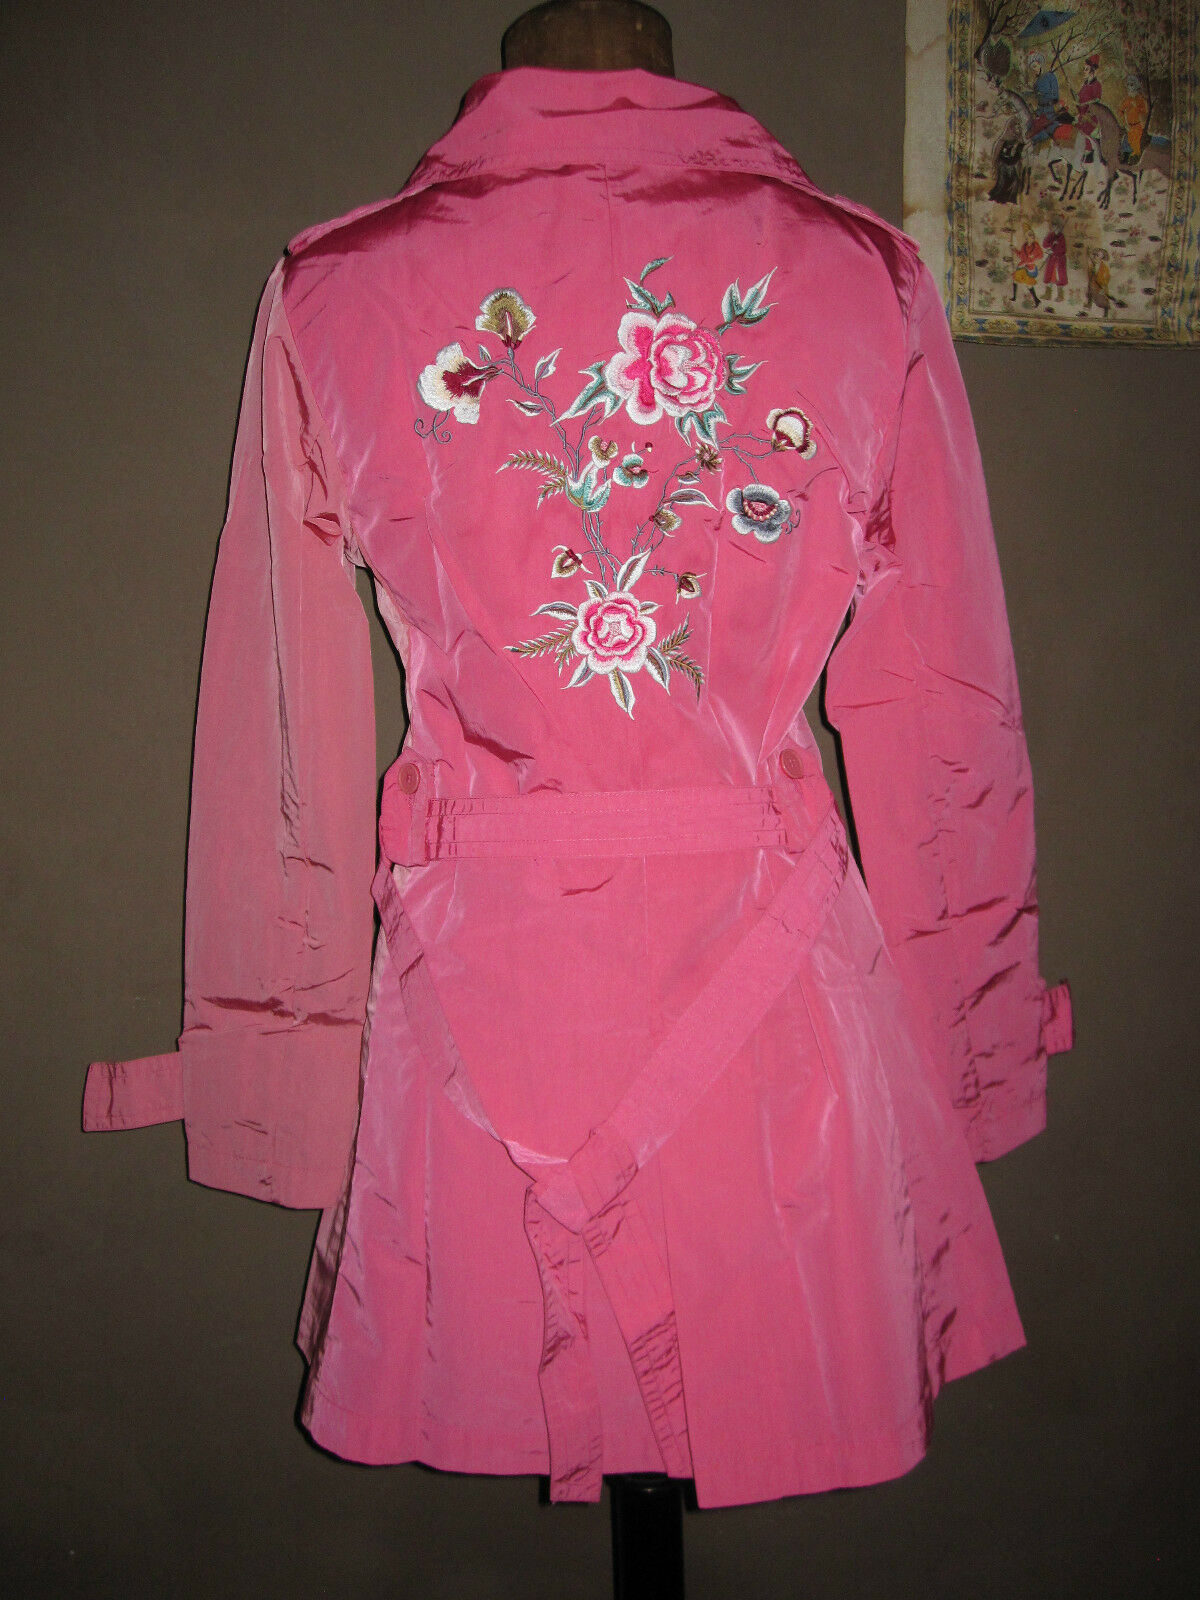 TRENCH CUSTO BARCELONA pink BRODERIE FLEURS T F 36 I 40 TBE